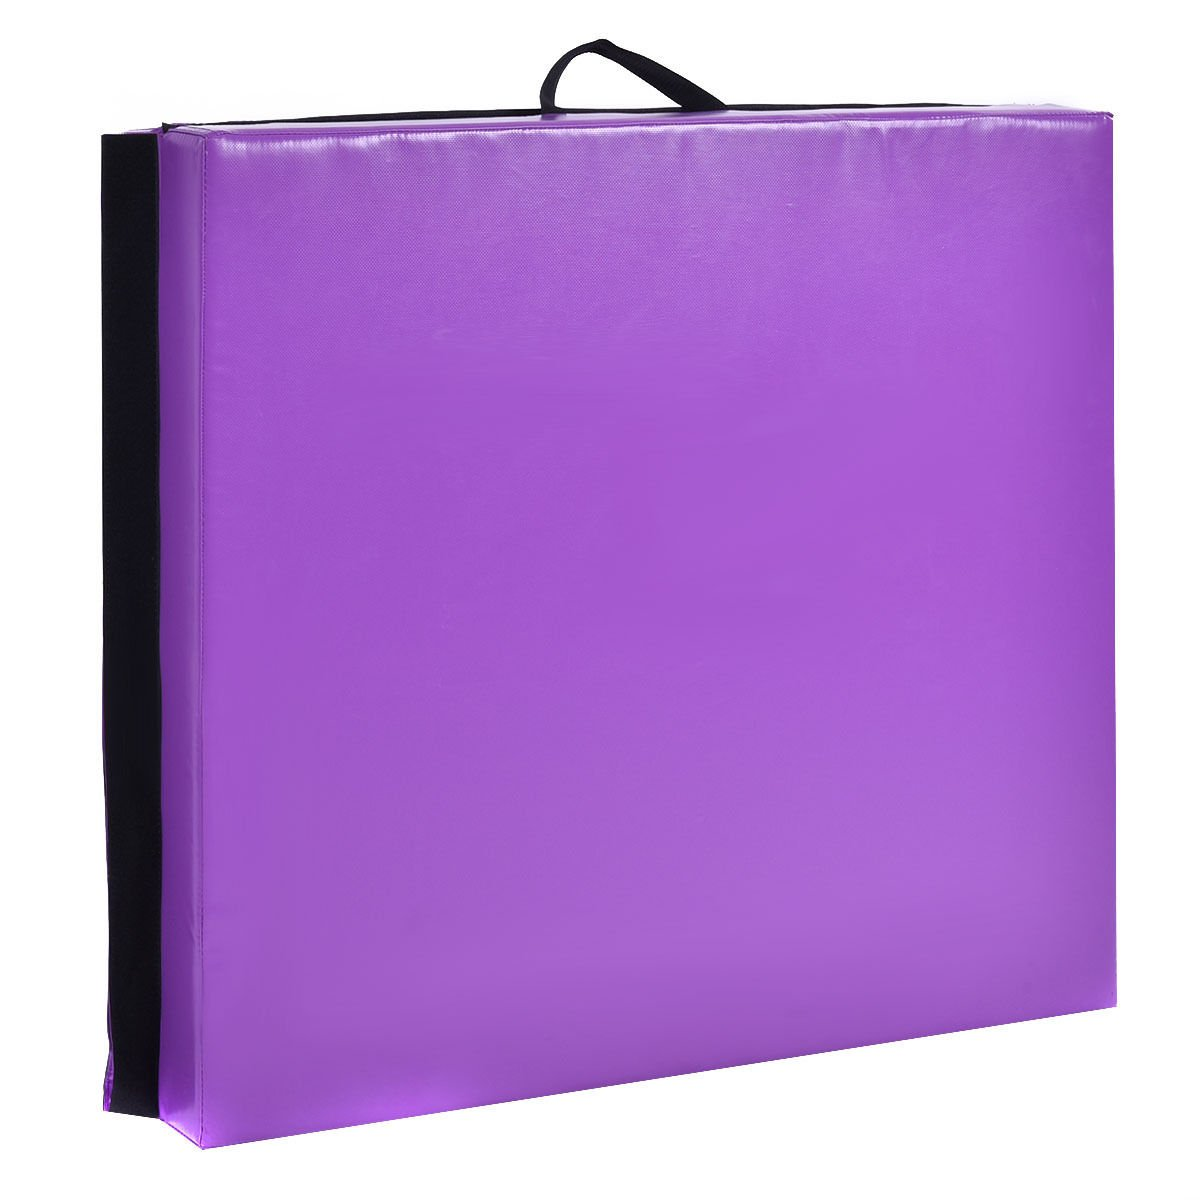 New 6'x38''X4'' Gymnastics Mat Thick Two Folding Panel Fitness Exercise Purple by MTN Gearsmith (Image #2)